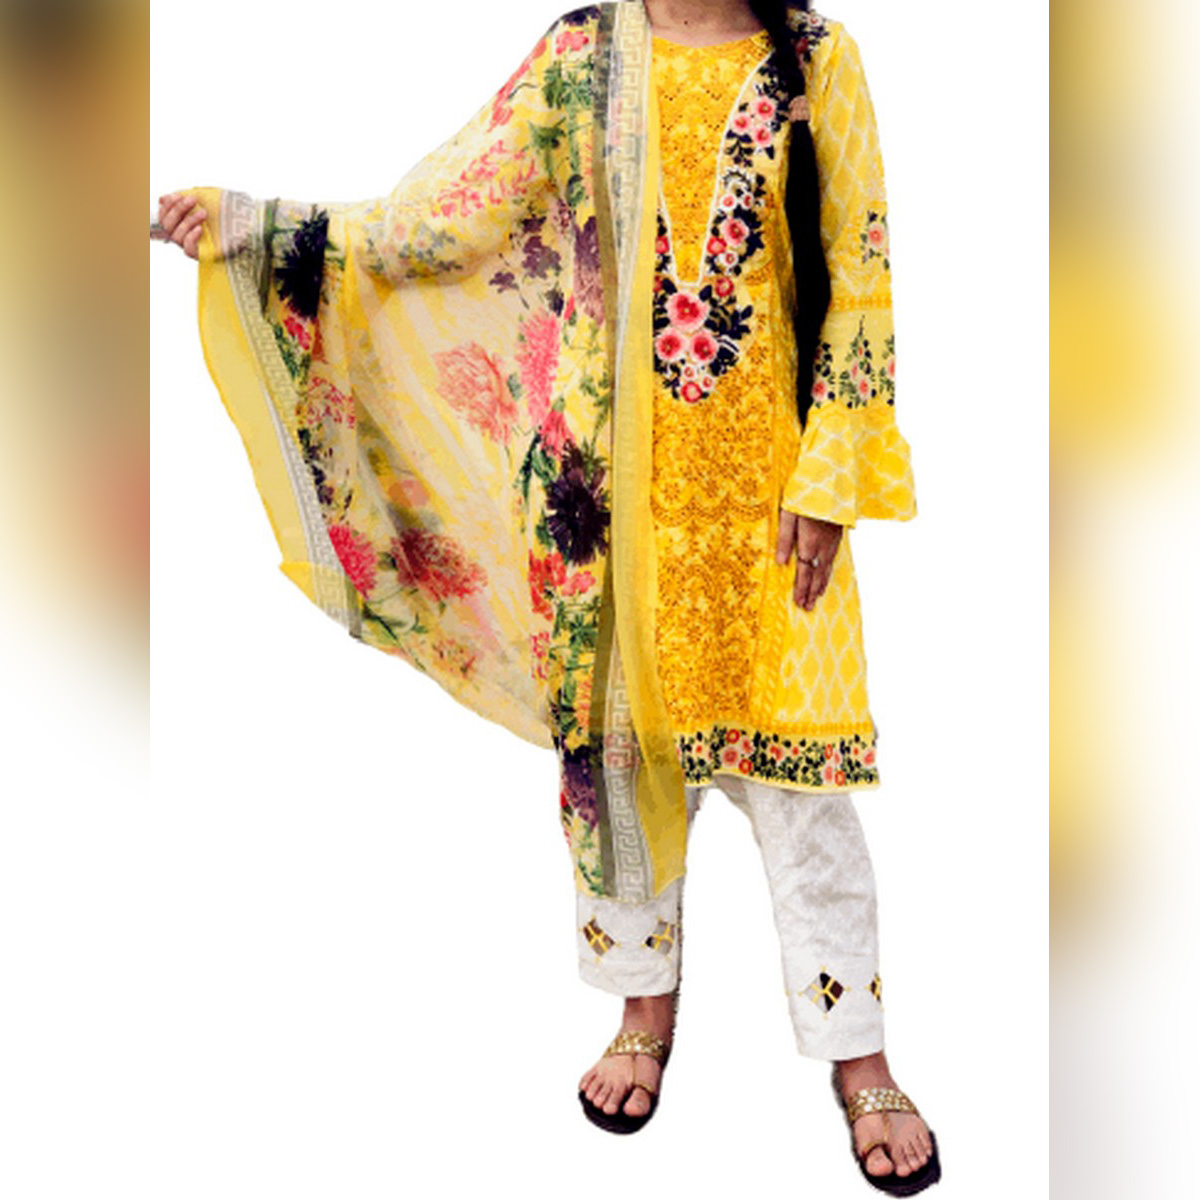 Bless Fabric, Pineapple – Women's Unstitched 3PC Embroidered and Printed Lawn Suit (Unstitched Lawn Suit for Women, Summer Collection 2021)